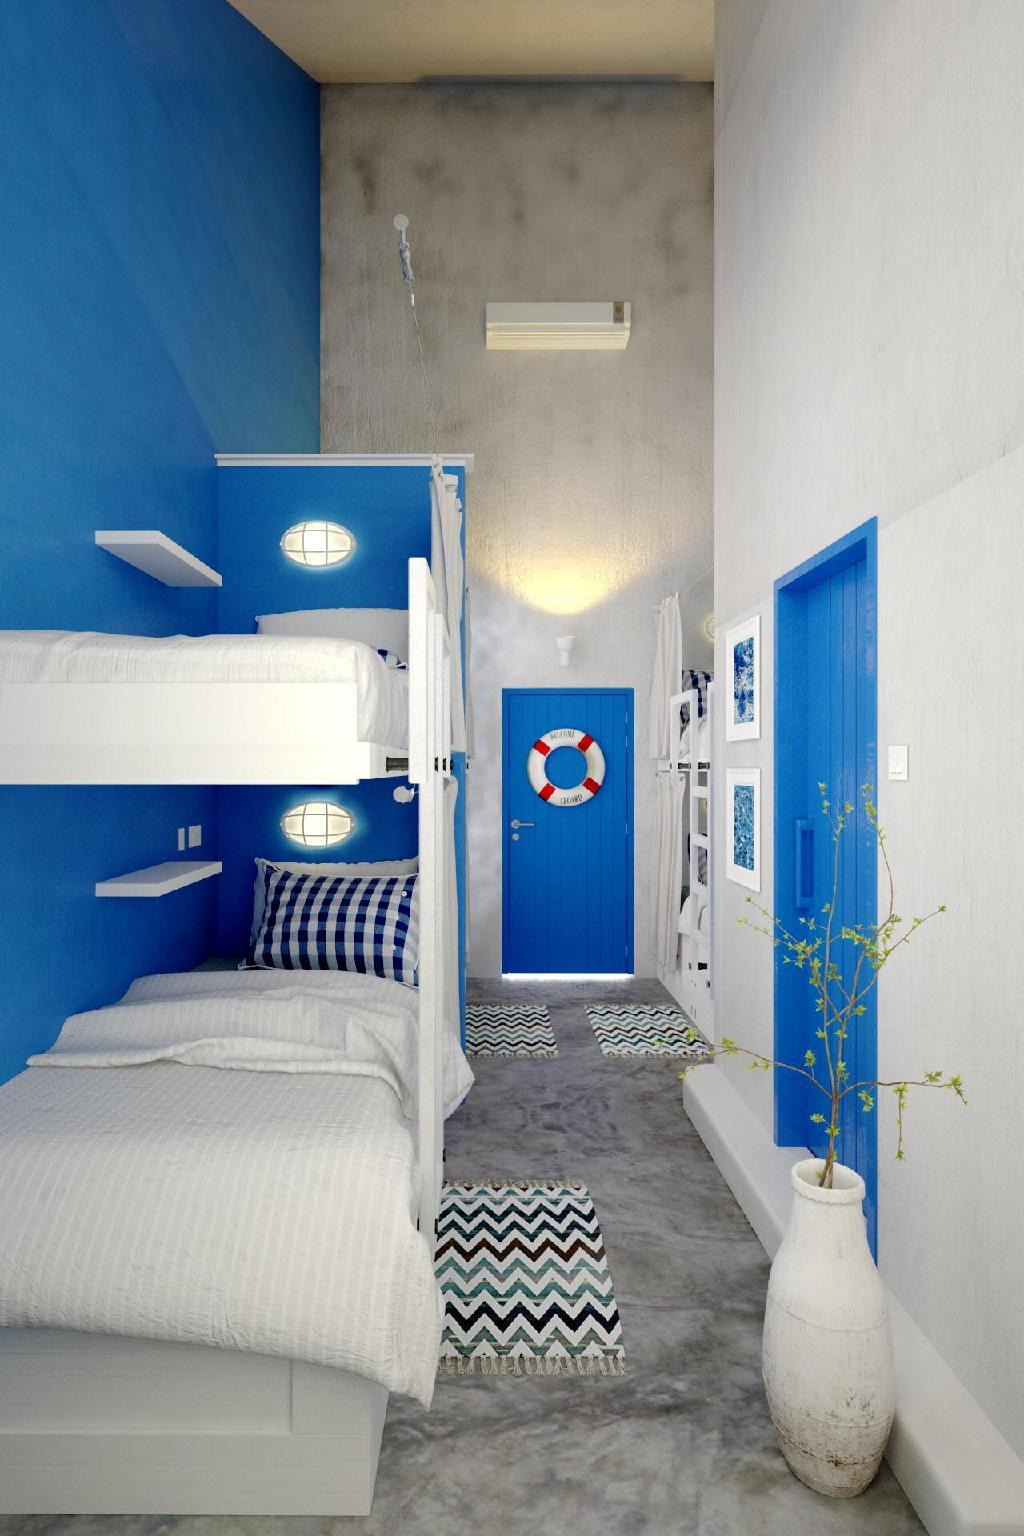 Private Dormitory Room (Bunk Beds)